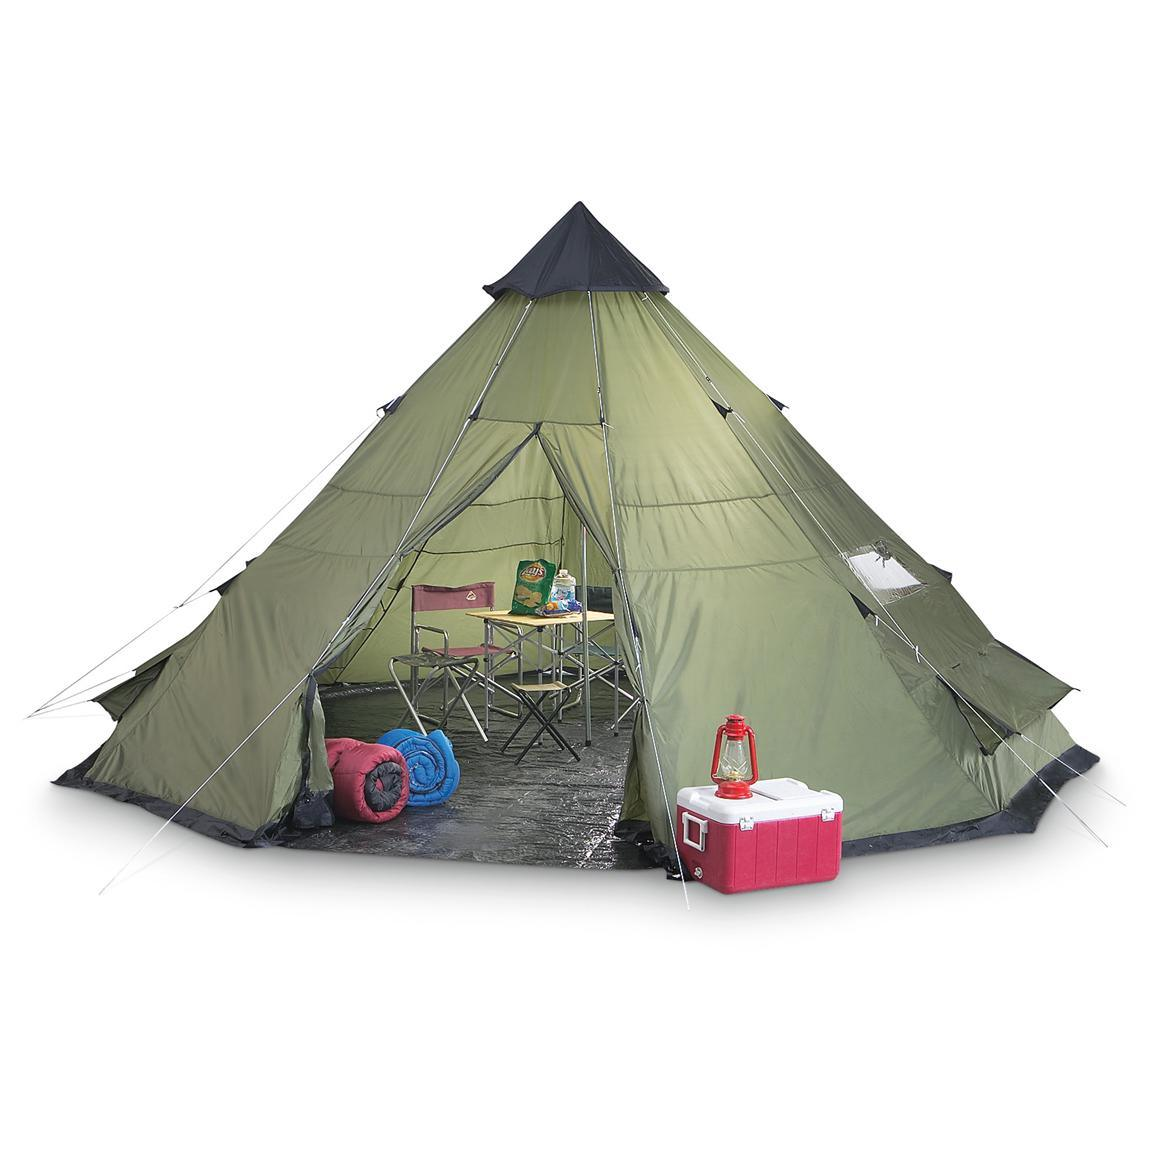 2017 Hot Selling Big Camping Bell Rock Indian Teepee Camping Tent